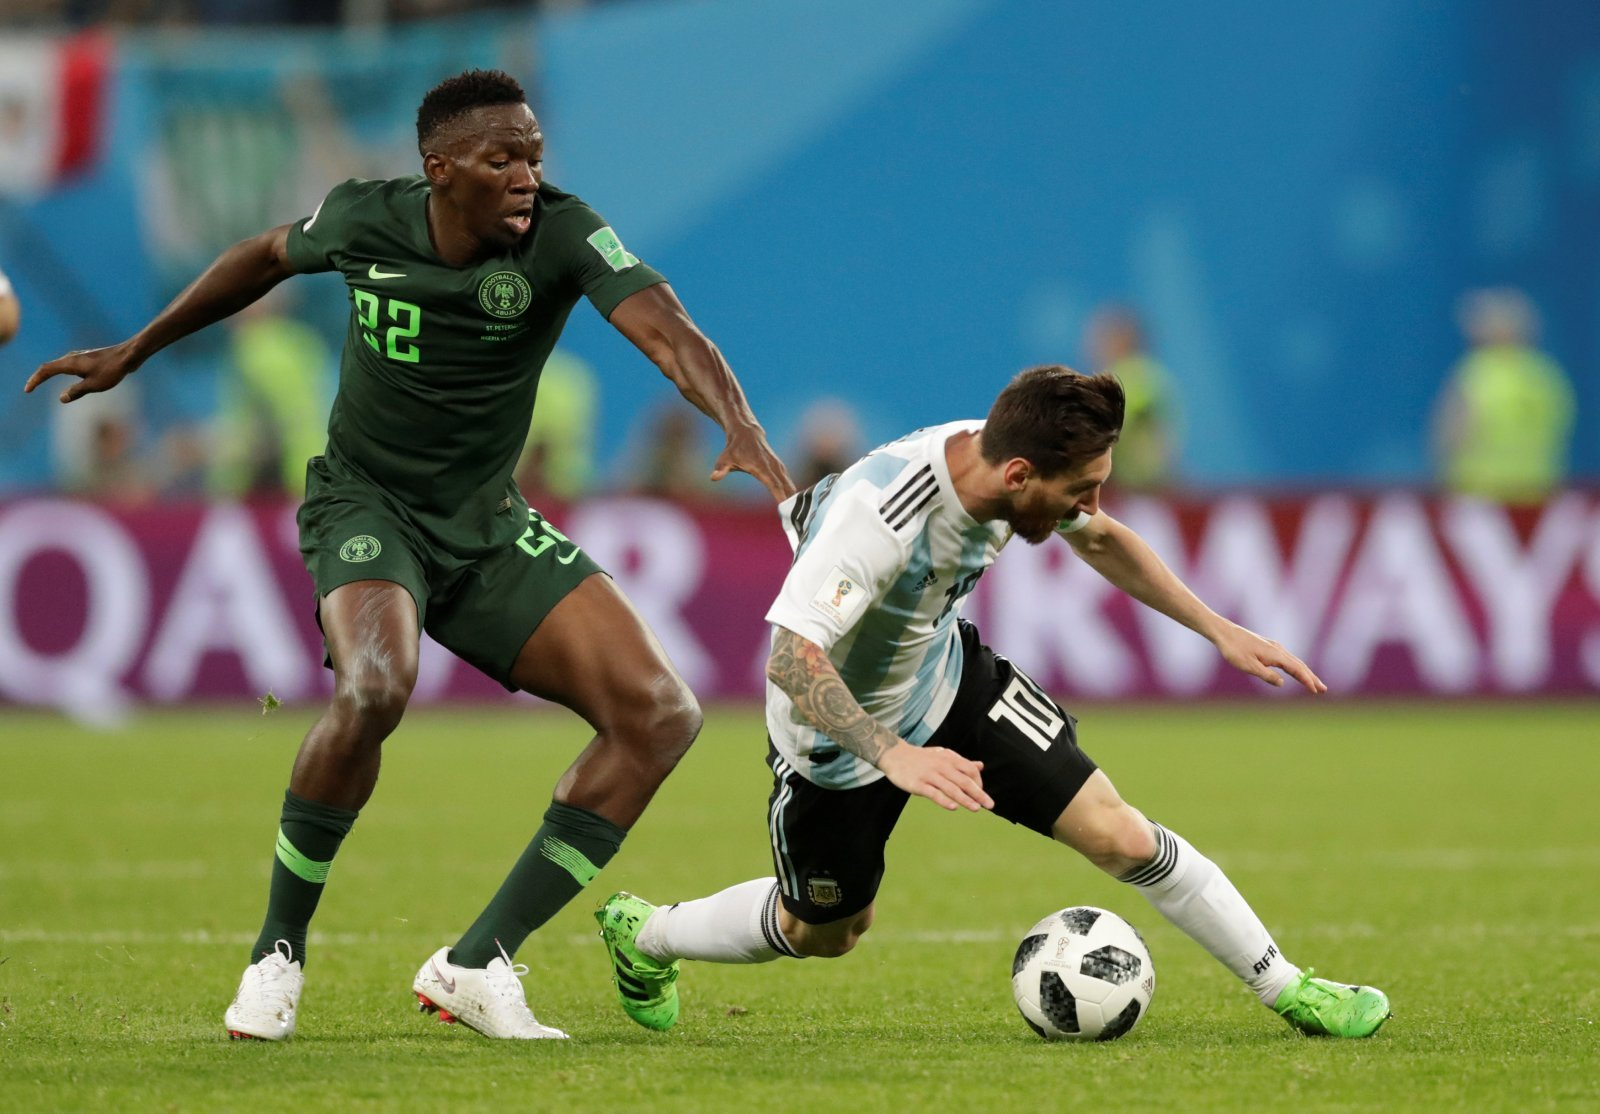 Leeds United must look at Chelsea outcast Kenneth Omeruo